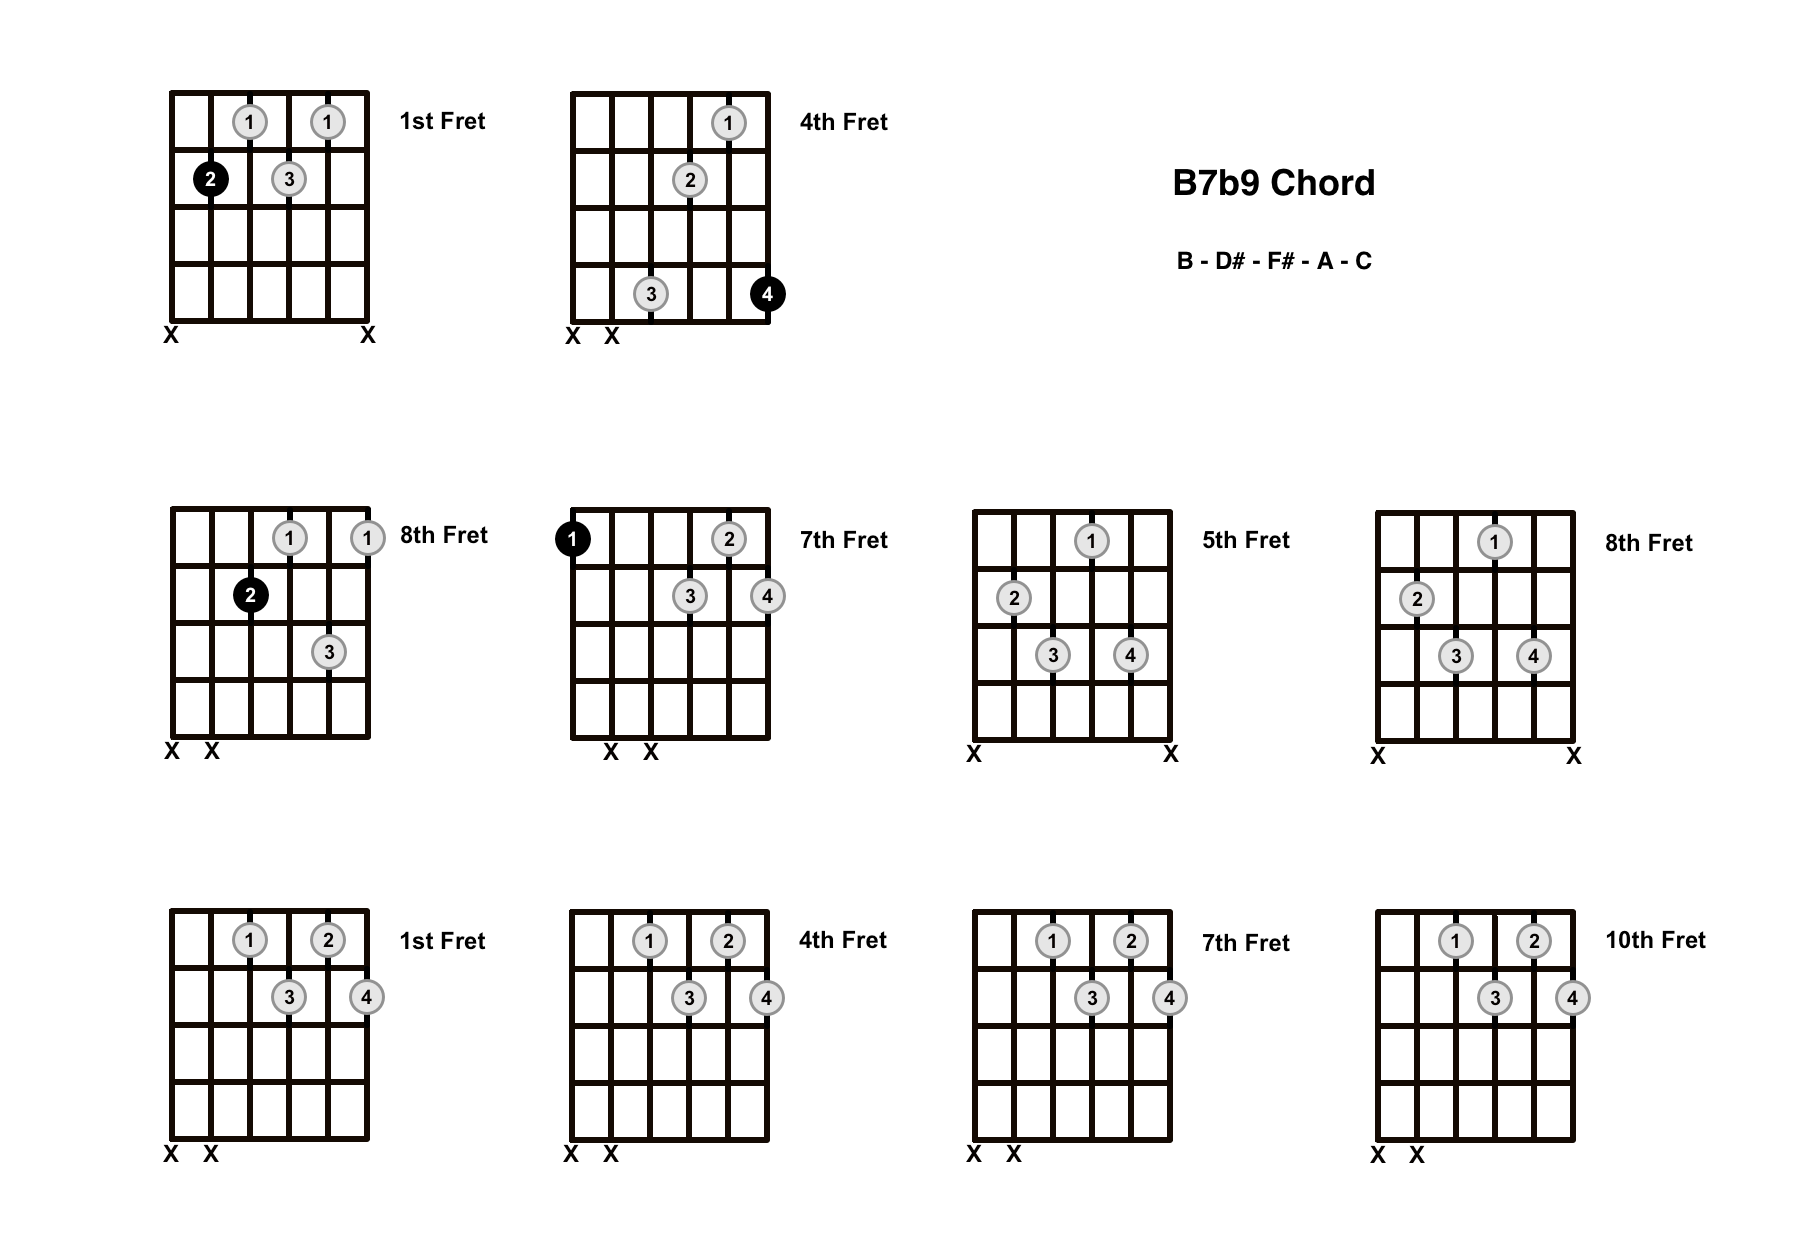 B7b9 Chord On The Guitar (B7 Flat 9) – Diagrams, Finger Positions and Theory